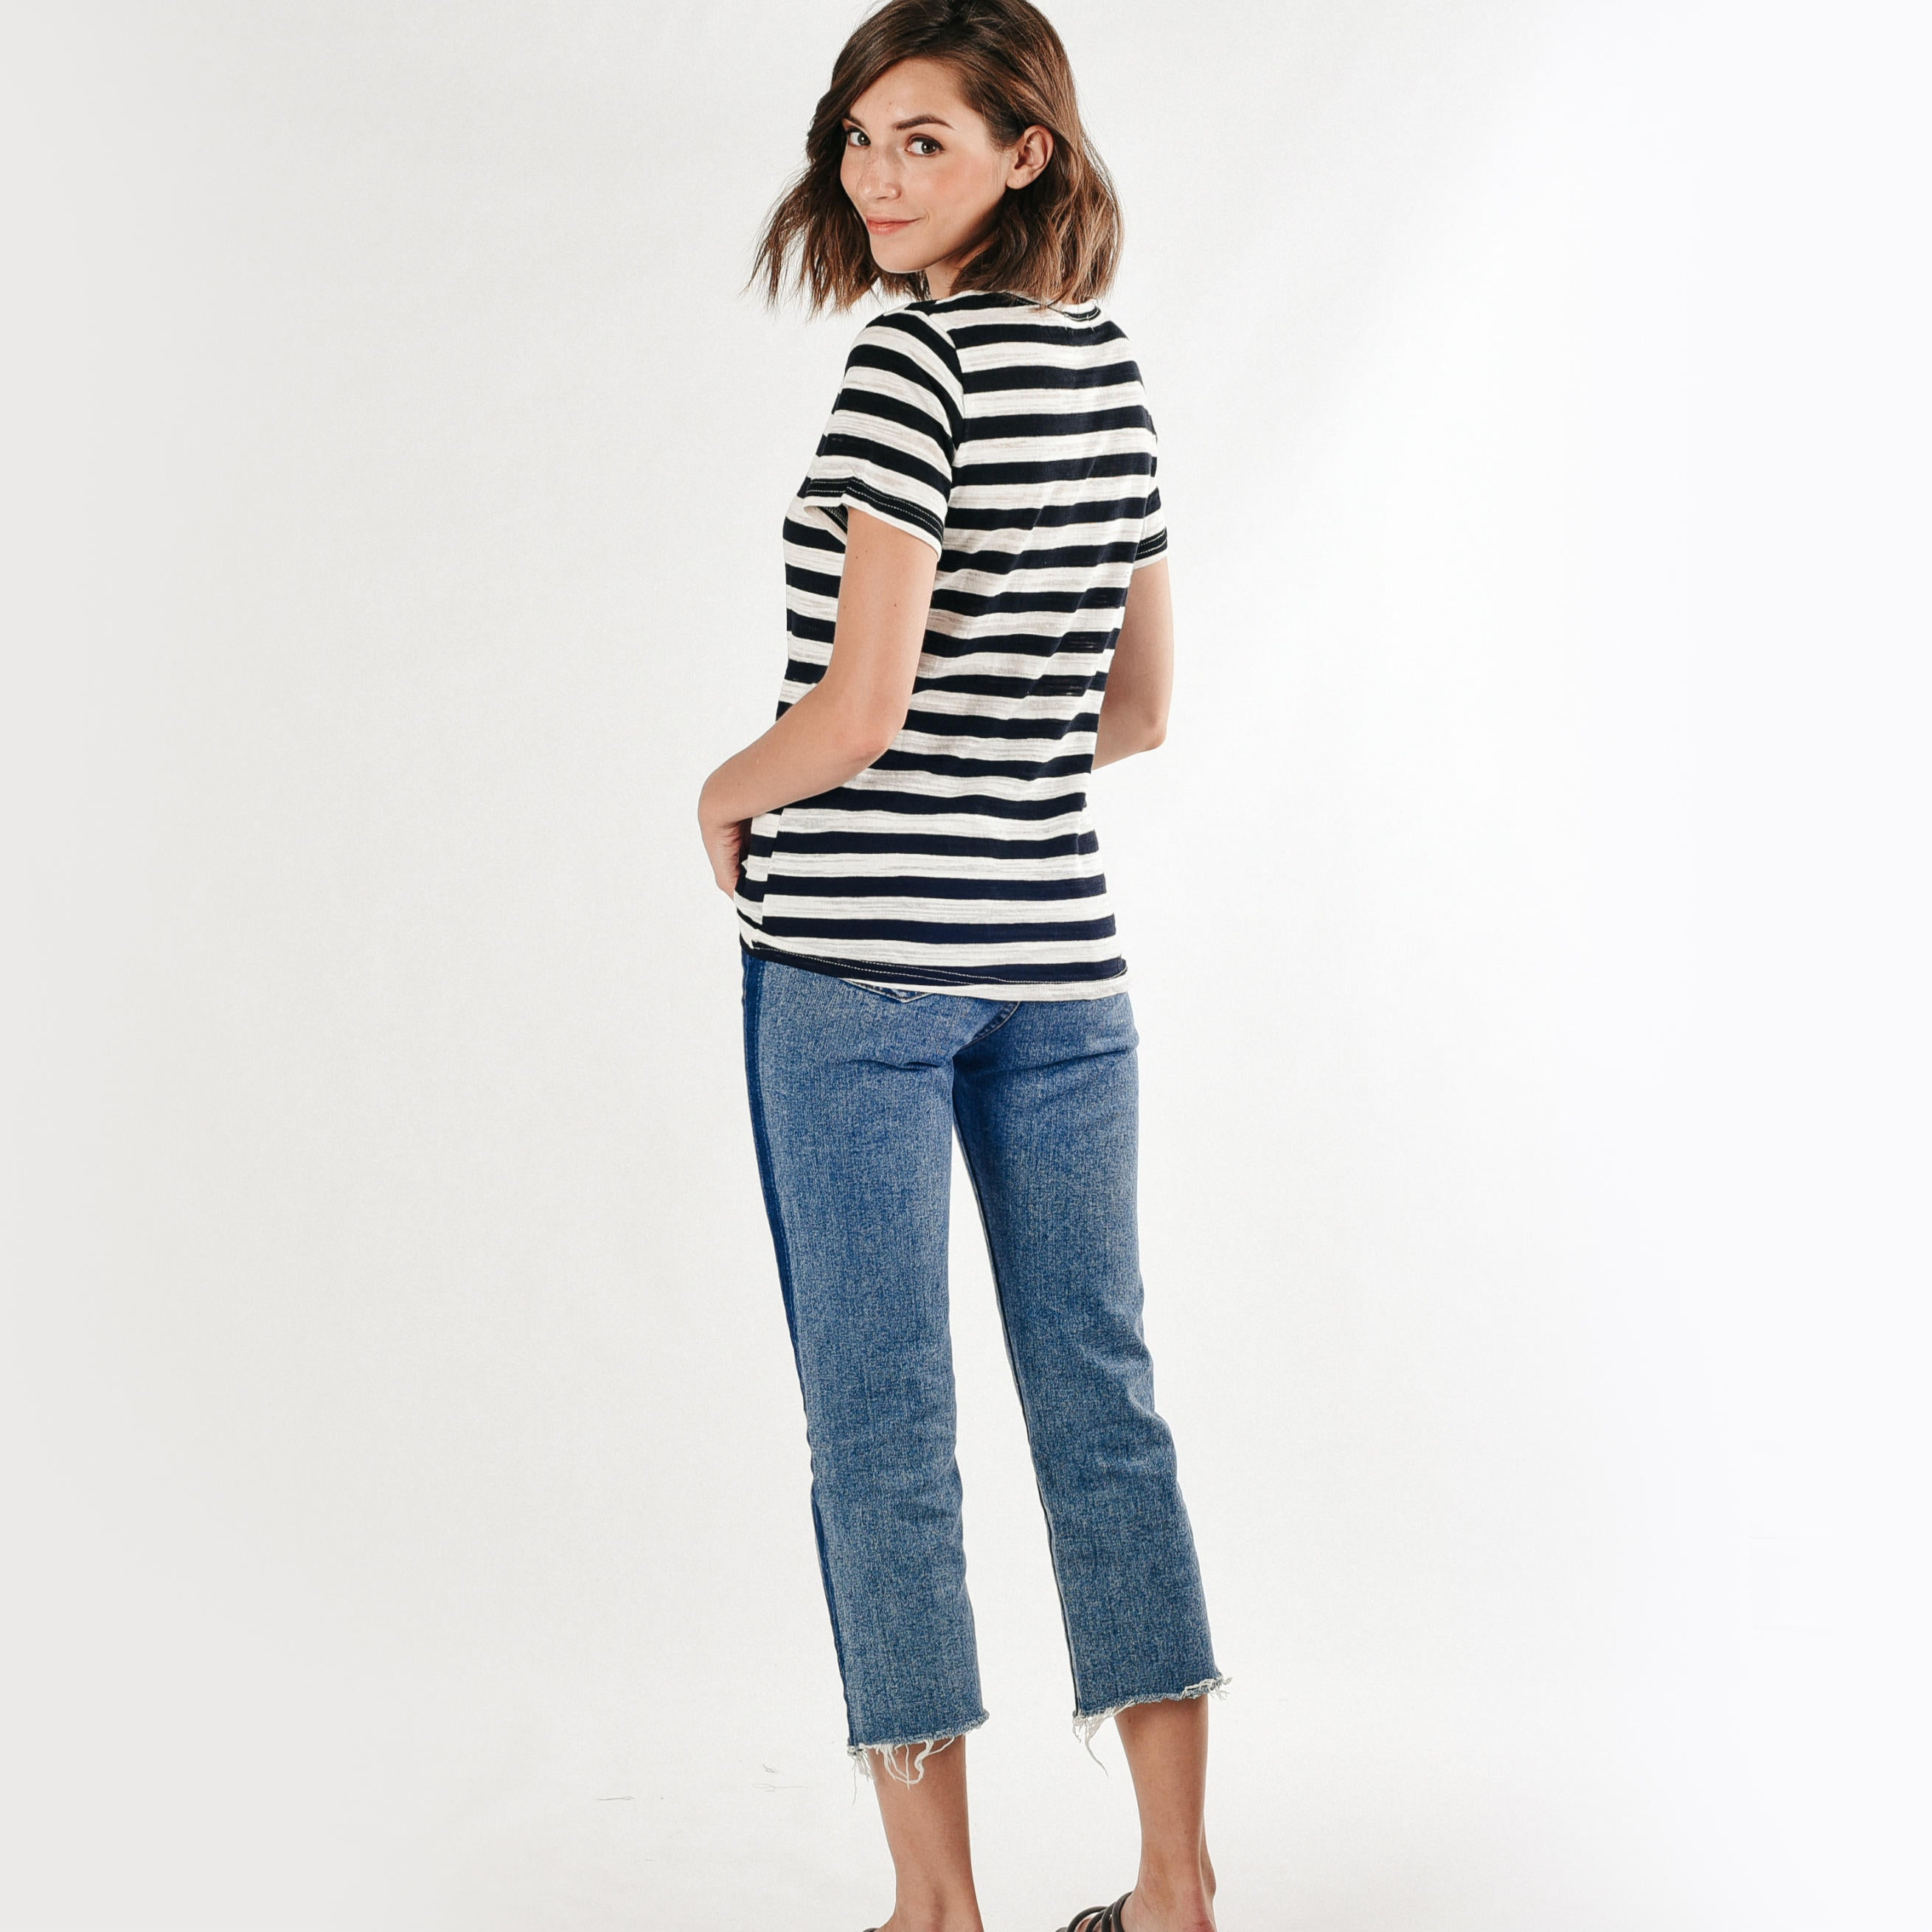 Bea Lips Tee - Stripes